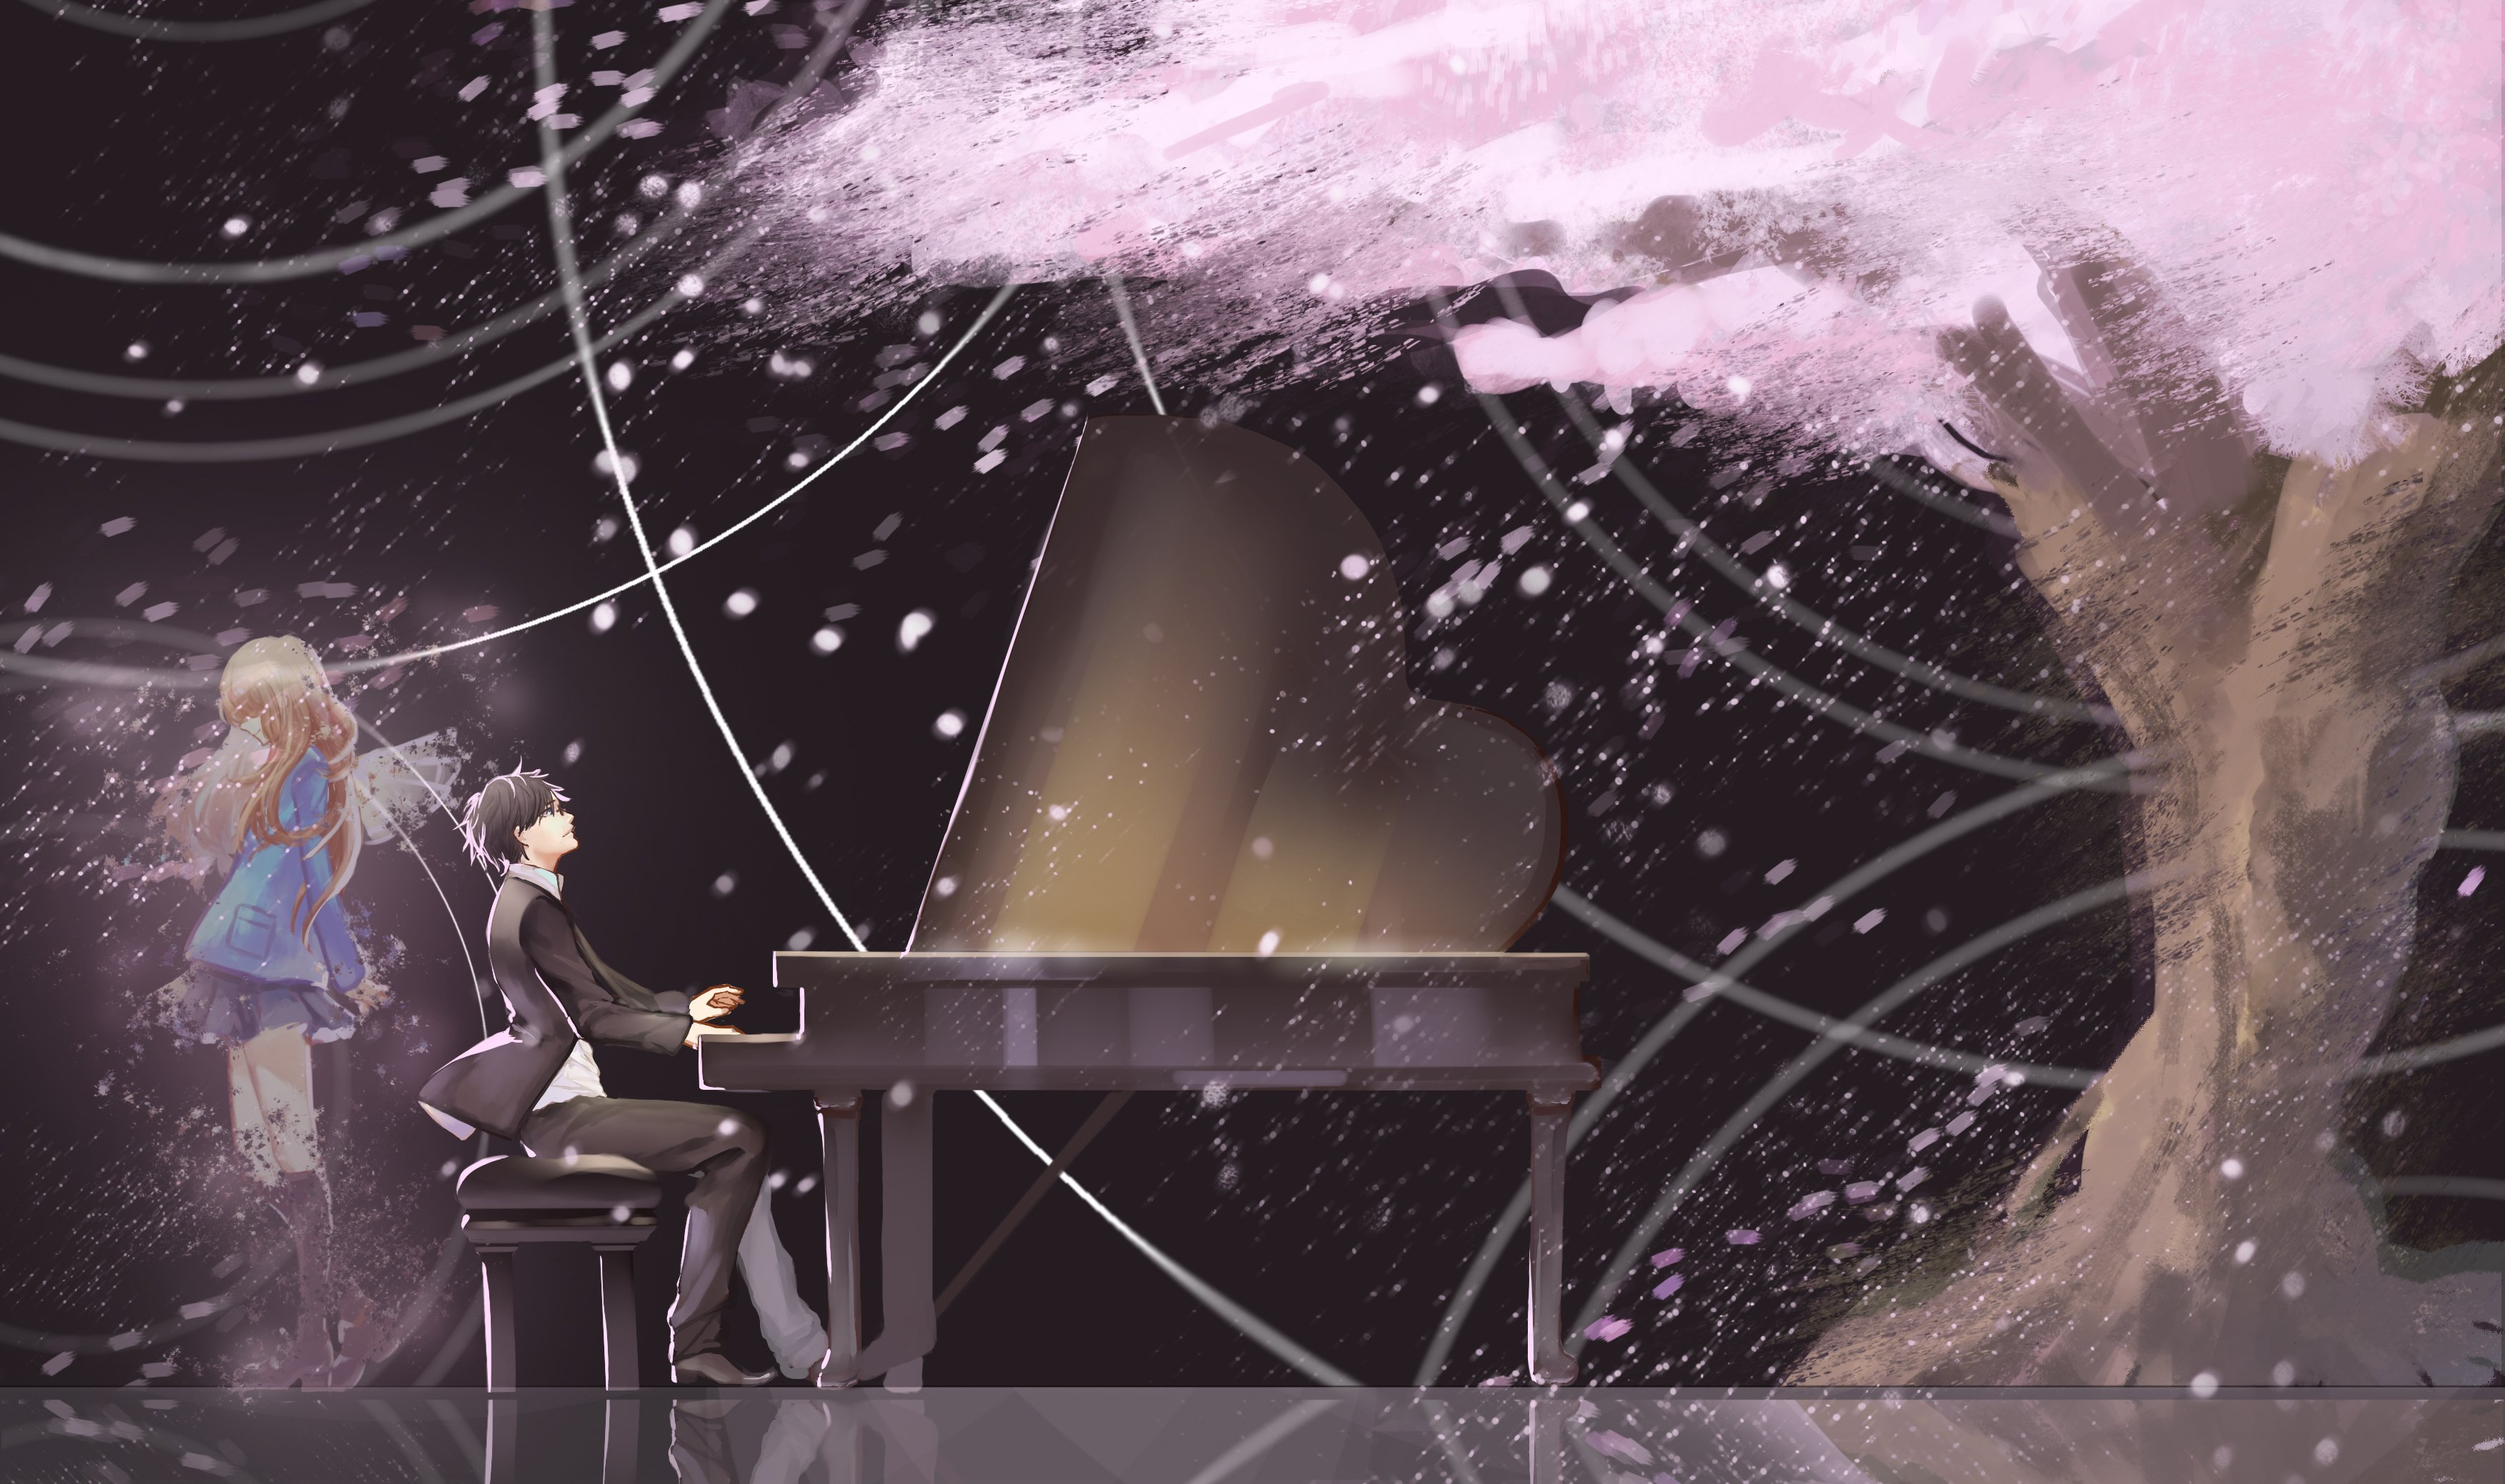 Your Lie In April Wallpaper Hd: Anime Series Girl Boy Piano Music Tree Wallpaper